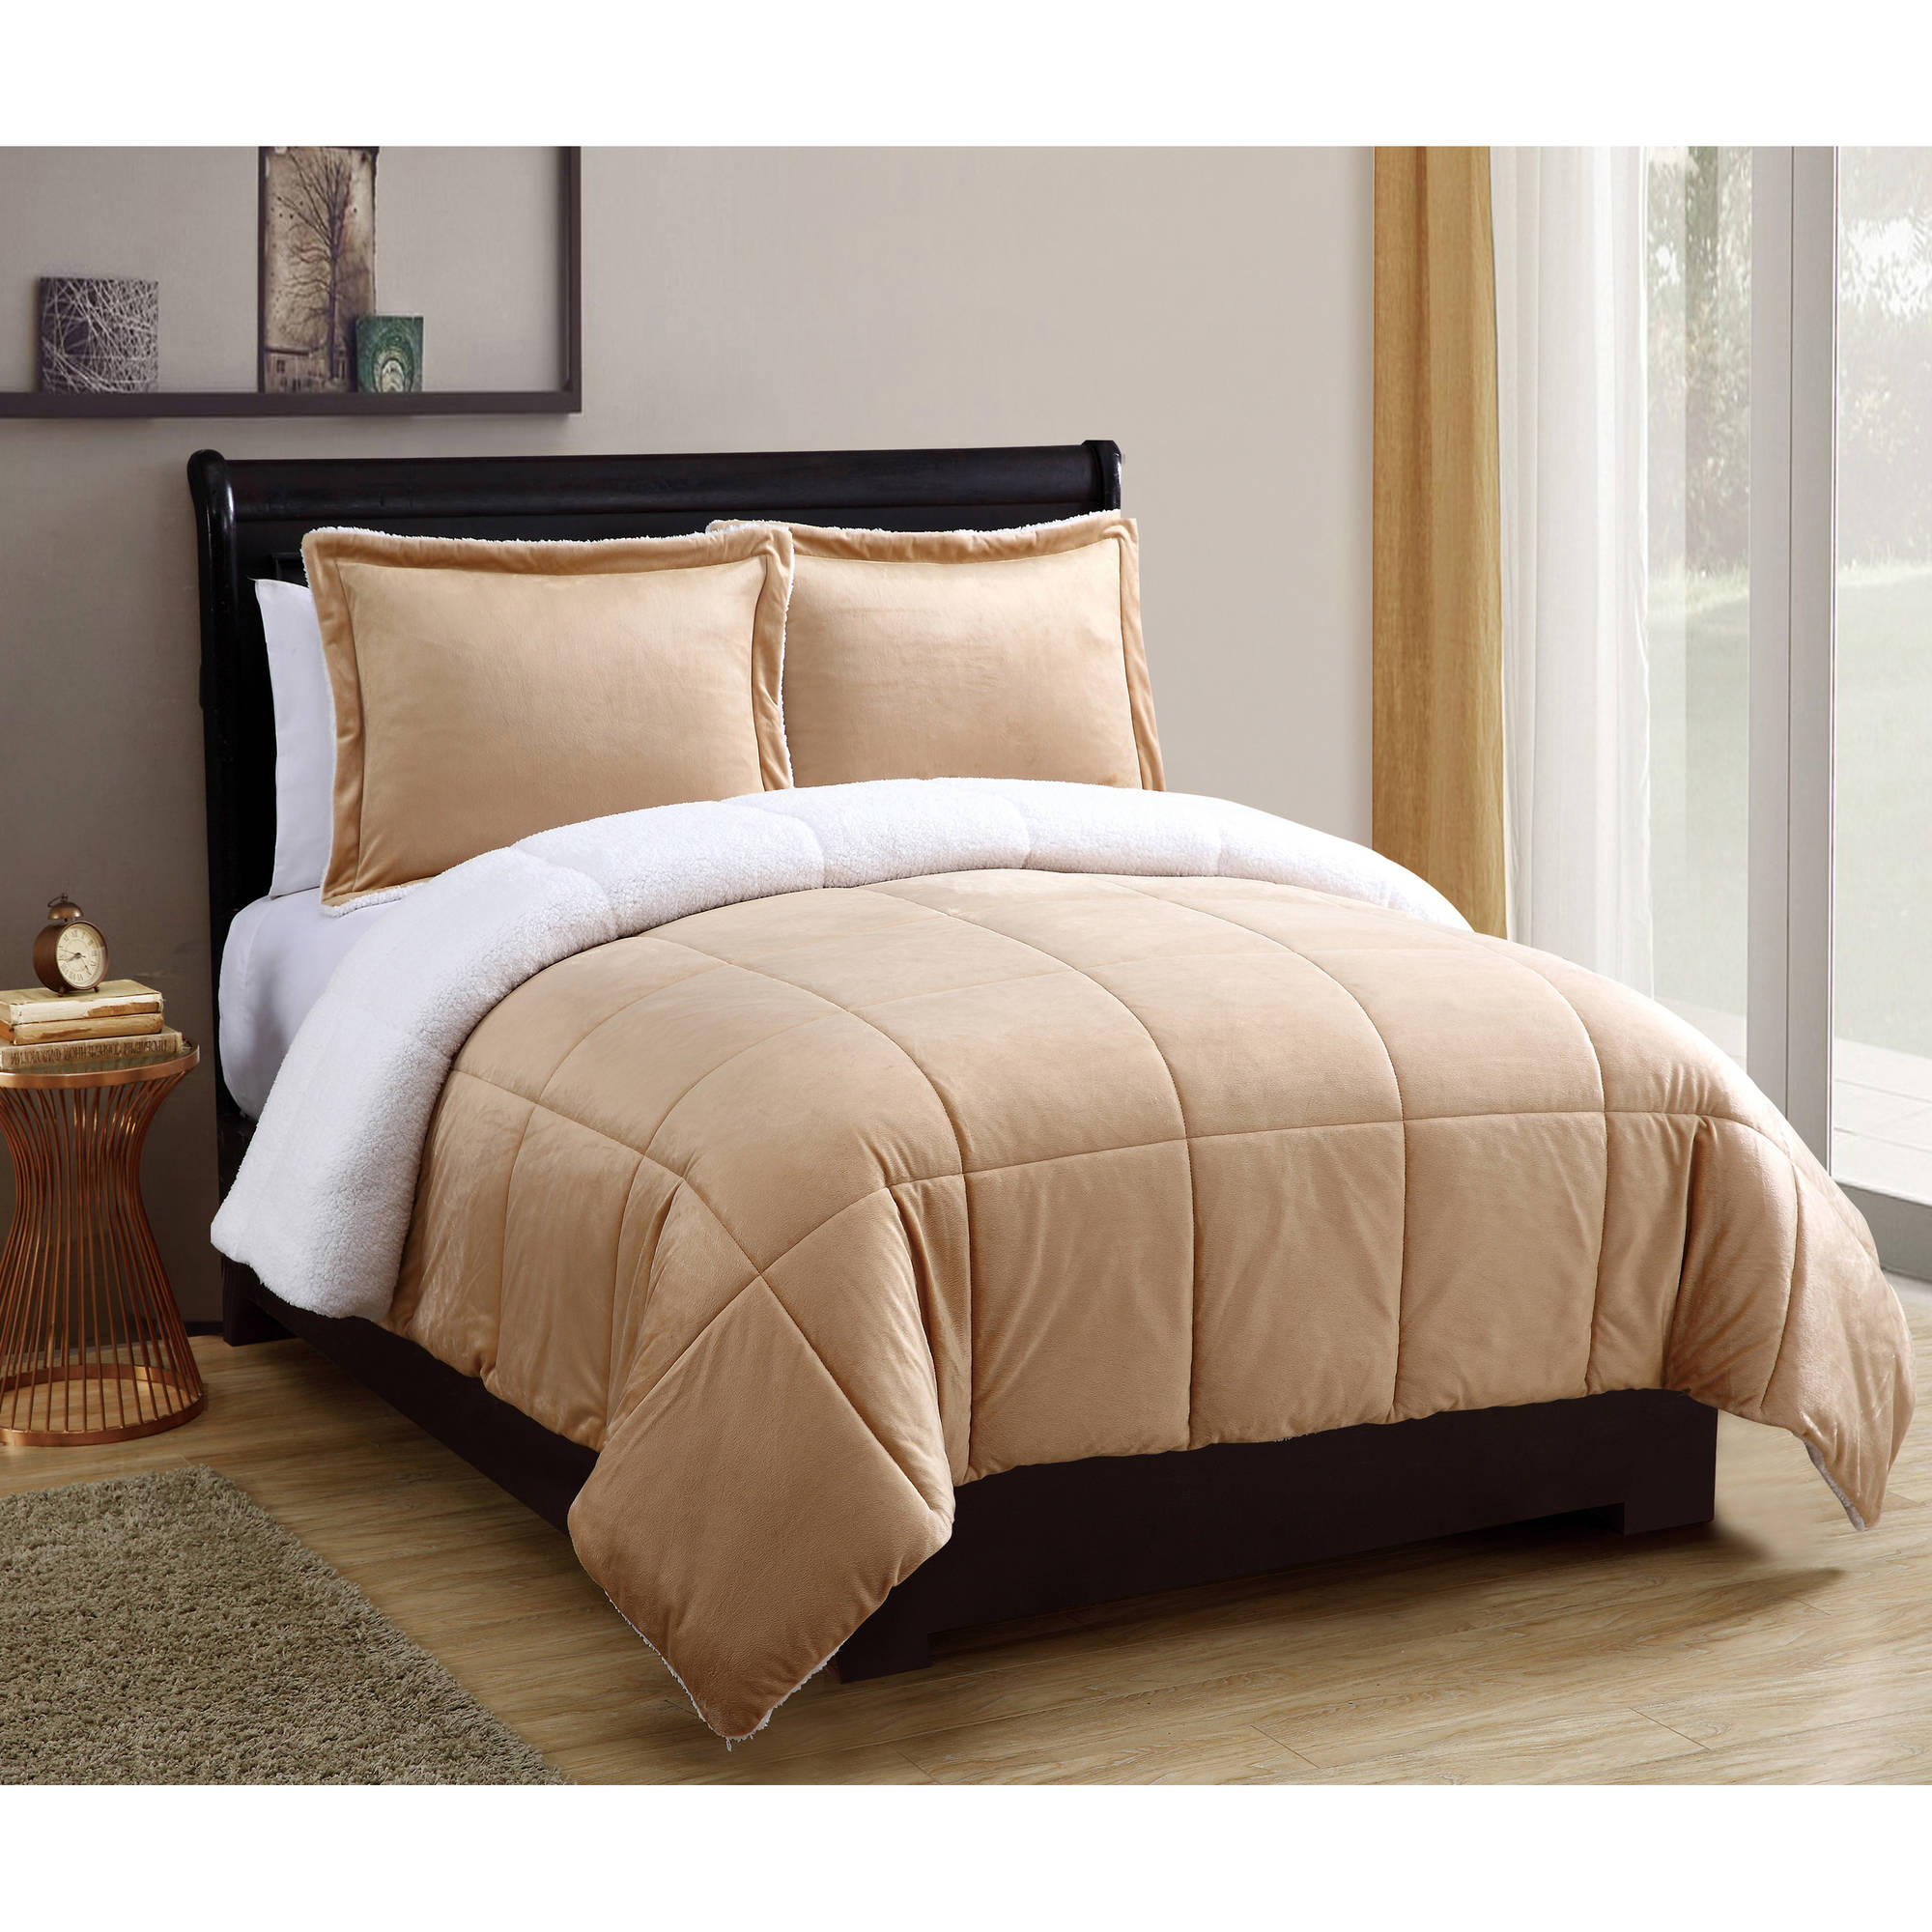 VCNY Solid Micro Mink Sherpa Bedding Comforter Set